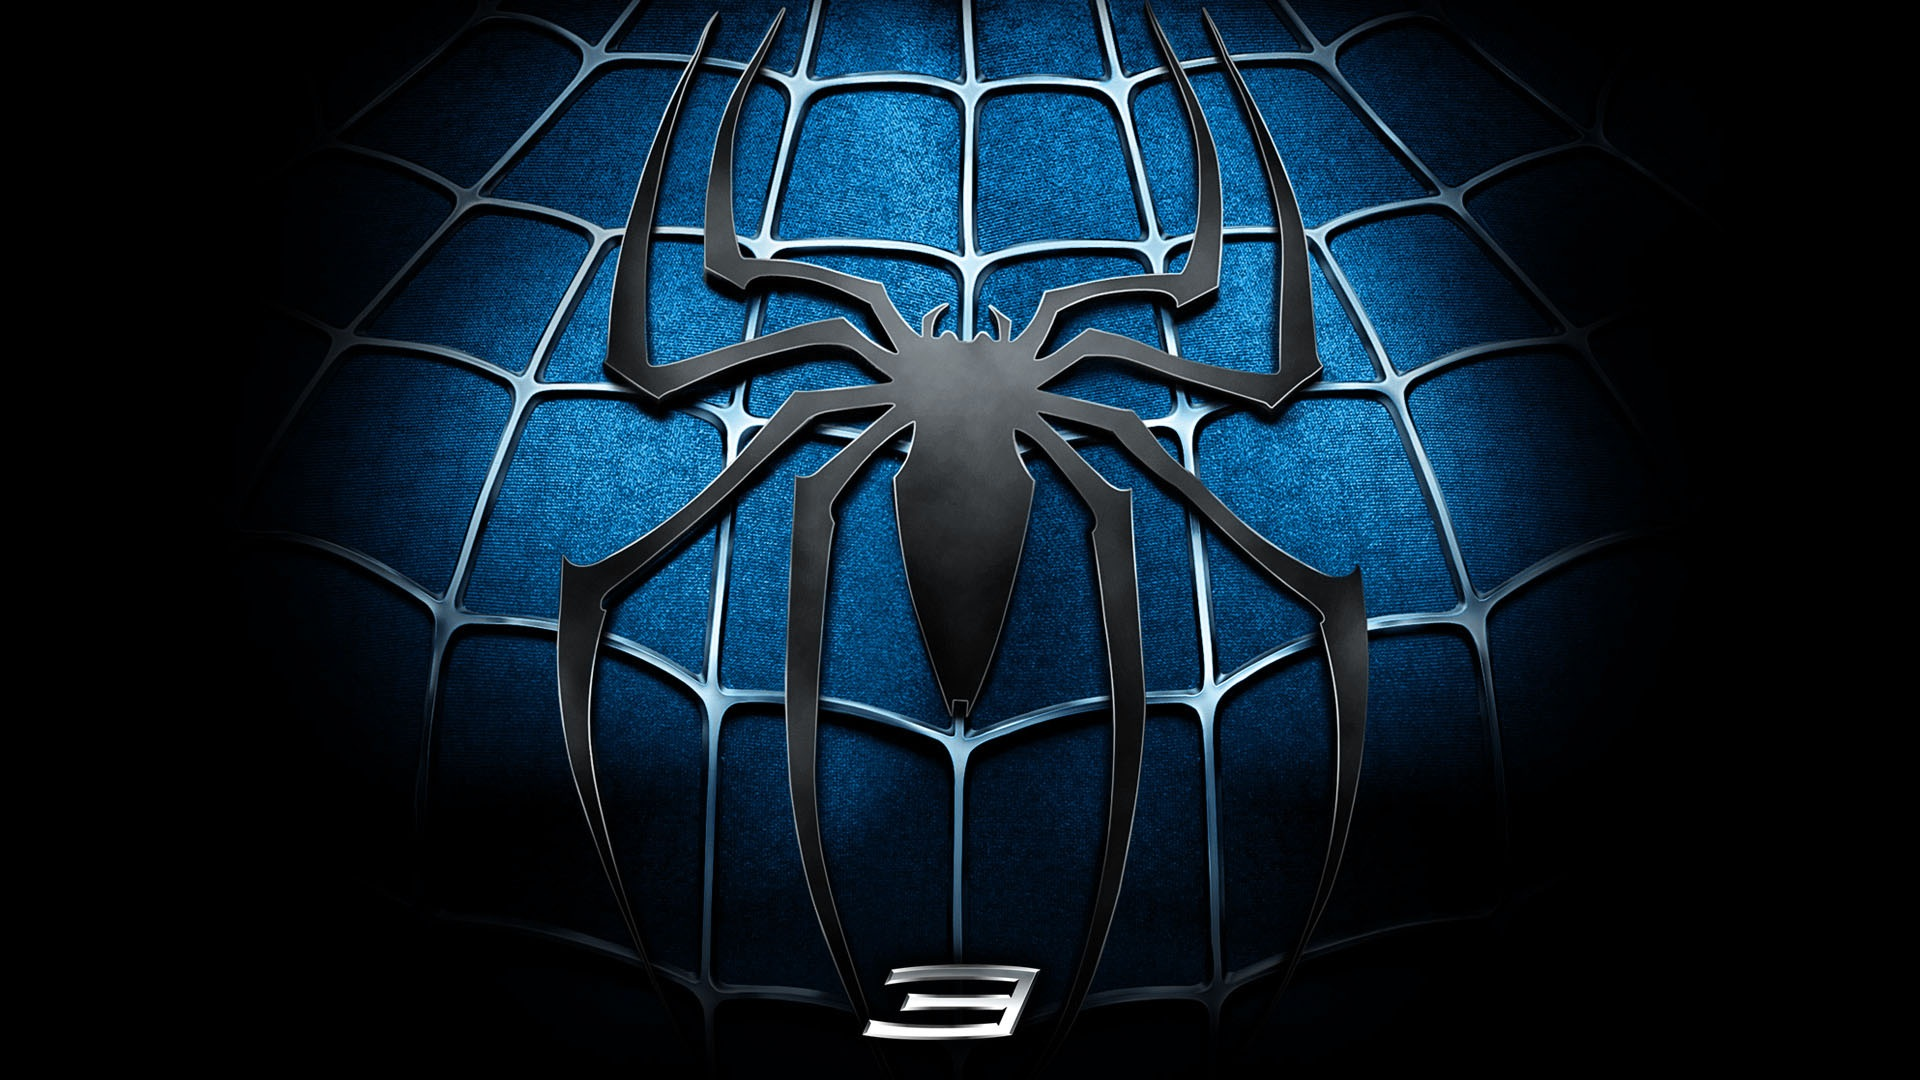 Spider Man 3 hd wallpapers 1920x1080